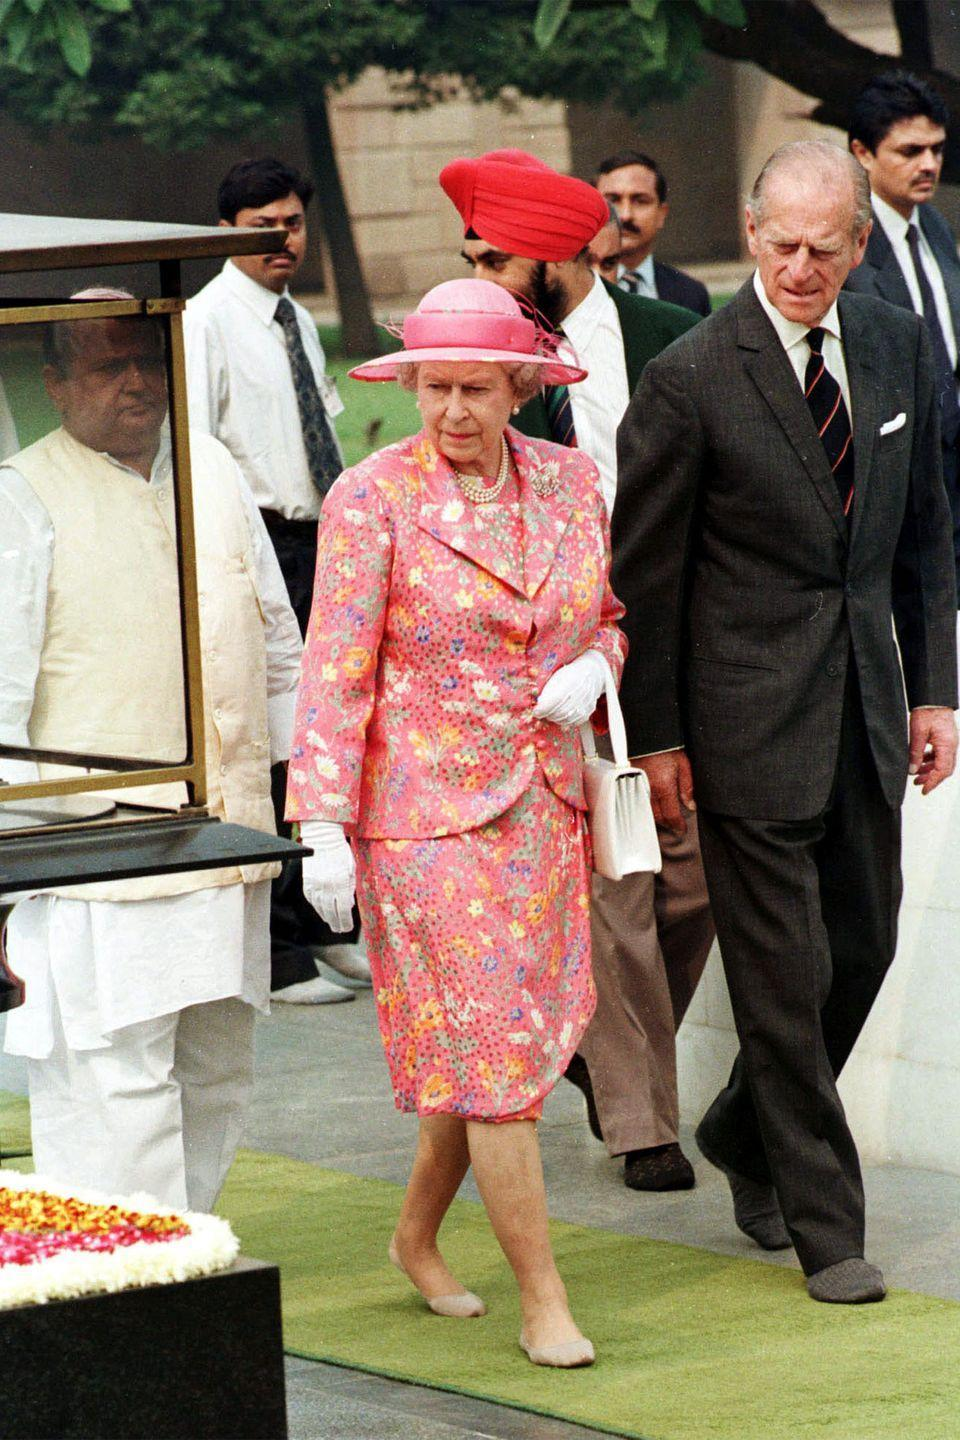 <p>The queen is dressed in a pink floral printed dress, matching blazer, and hat. Both she and Prince Philip removed their shoes, but kept on their socks, for a visit to the site of Gandhi's cremation in New Delhi, India. Walking barefoot on the grounds shows respect to the deceased. </p>